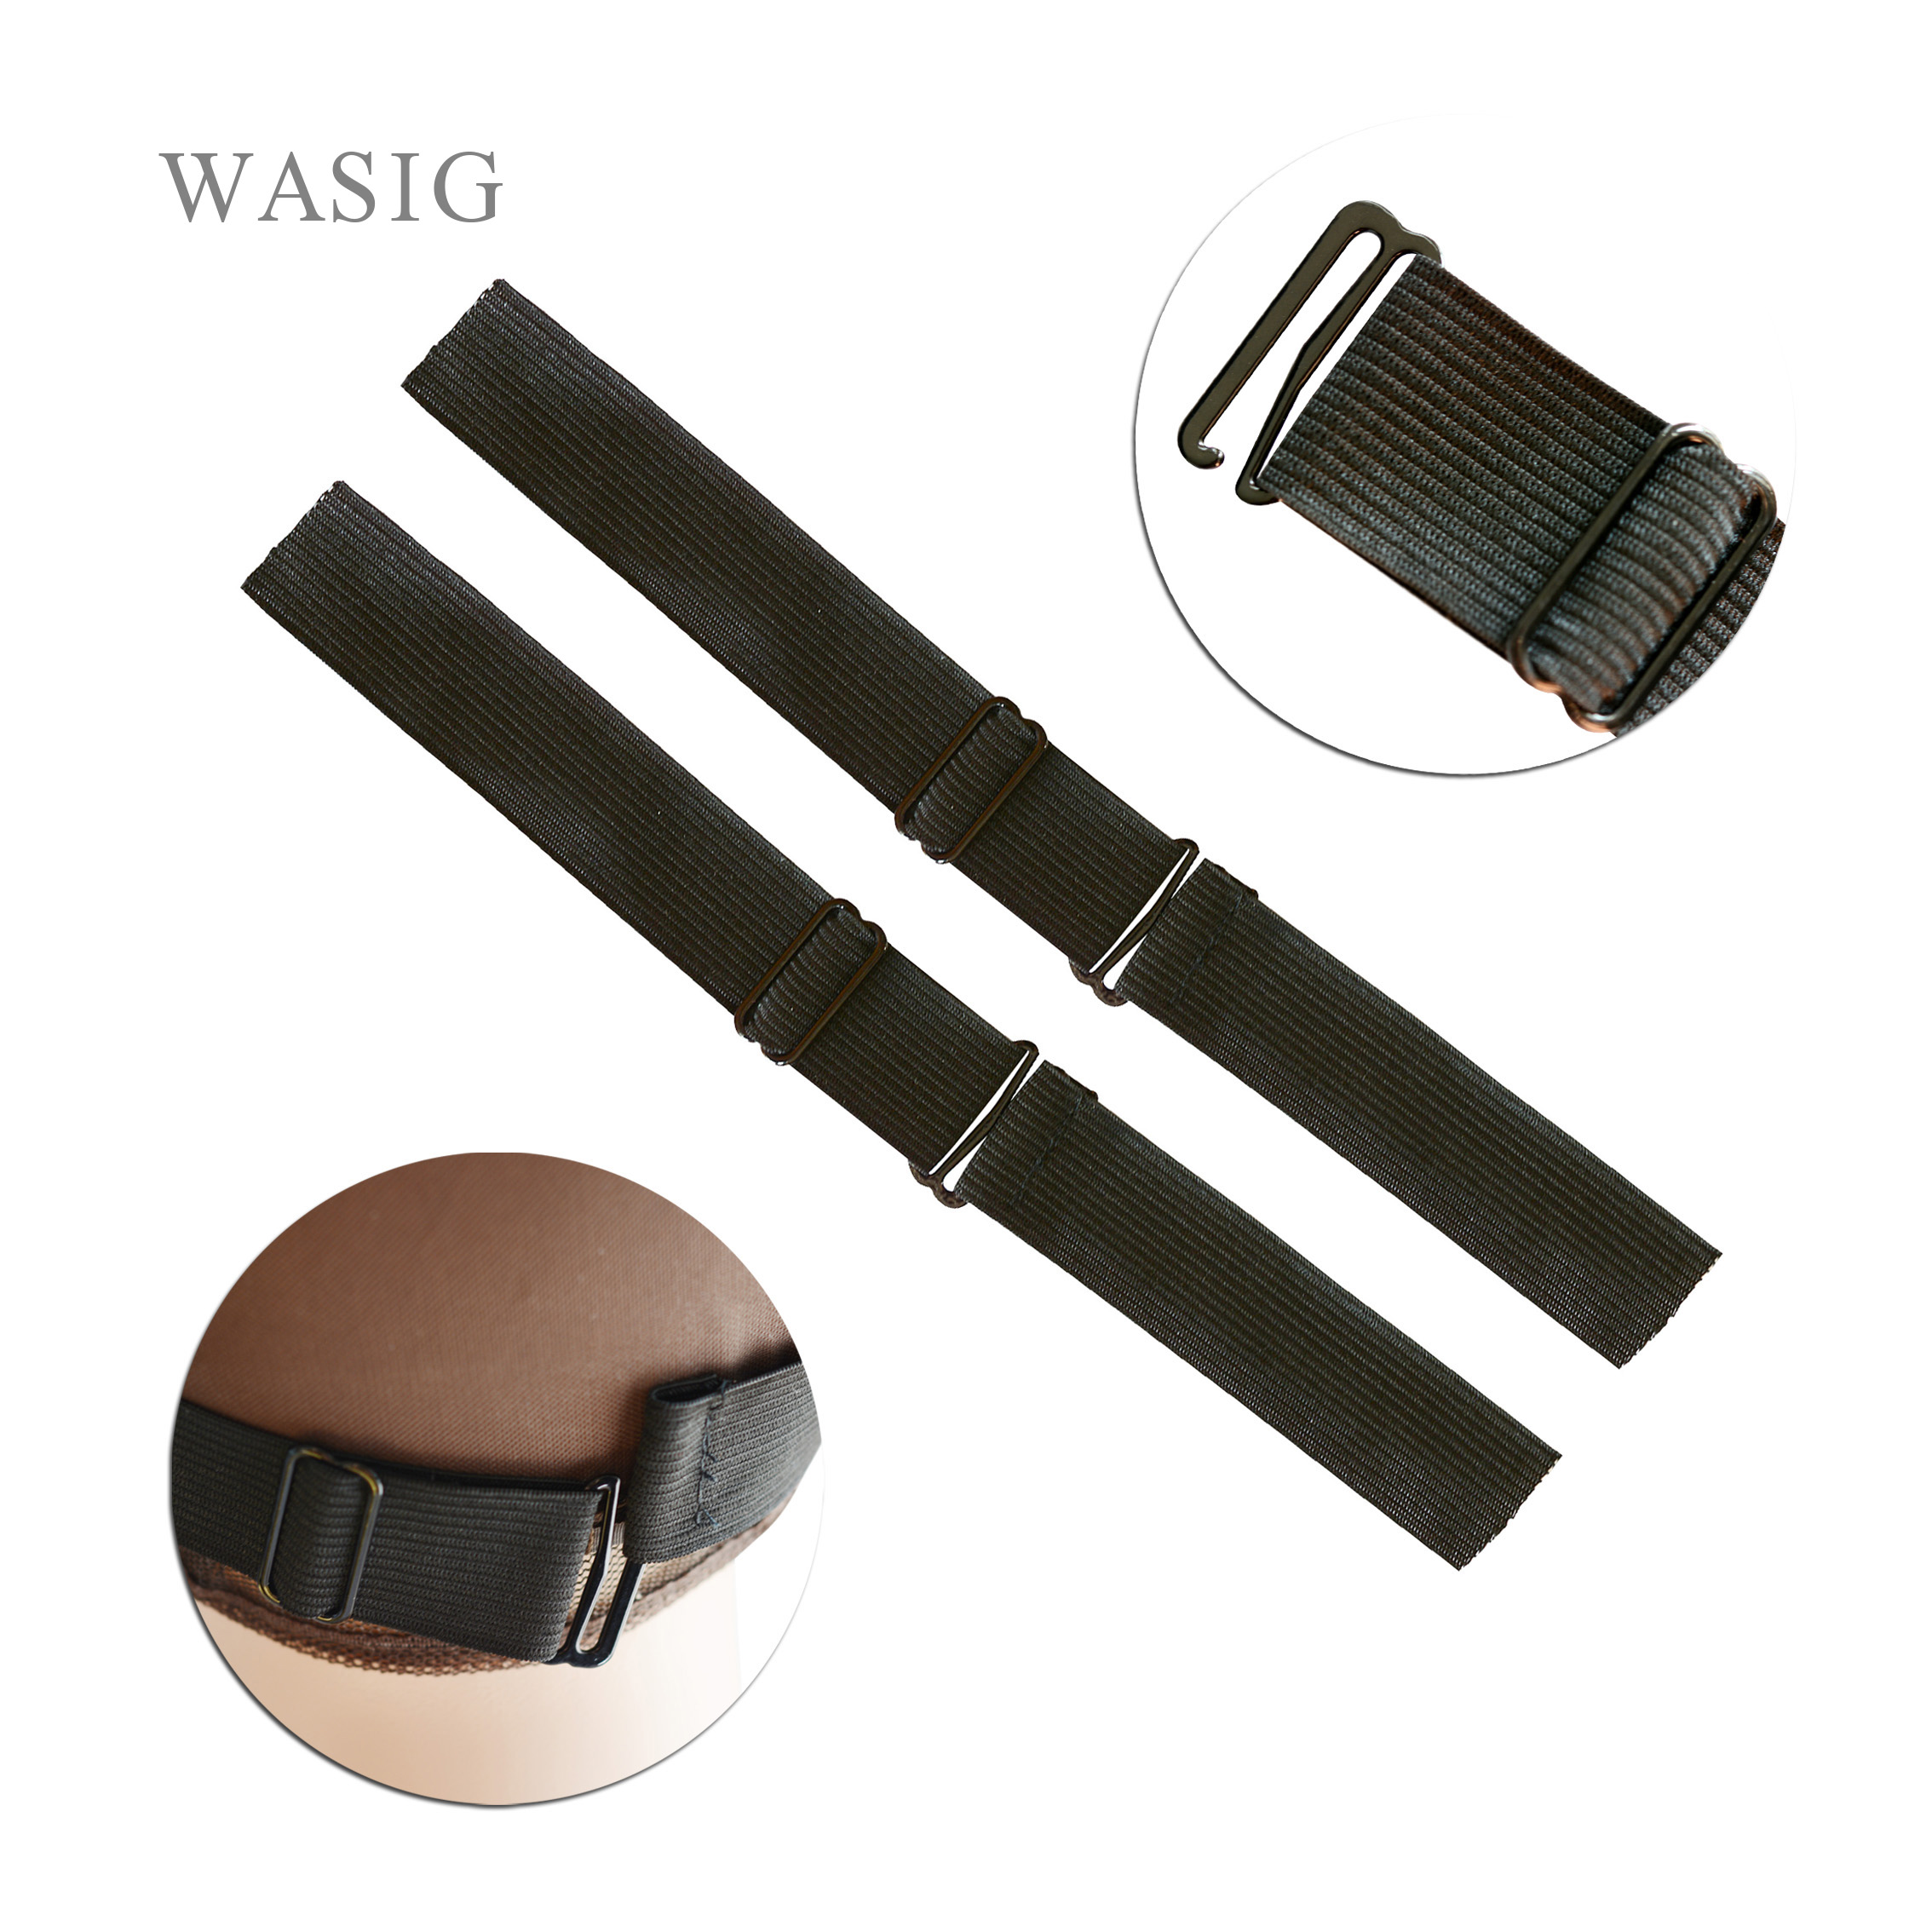 Adjustable Black Nylon Highest Elastic Bands For Wigs Making Wig Caps Hair Net Lace Net Sewing Rubber Wig Making Tools